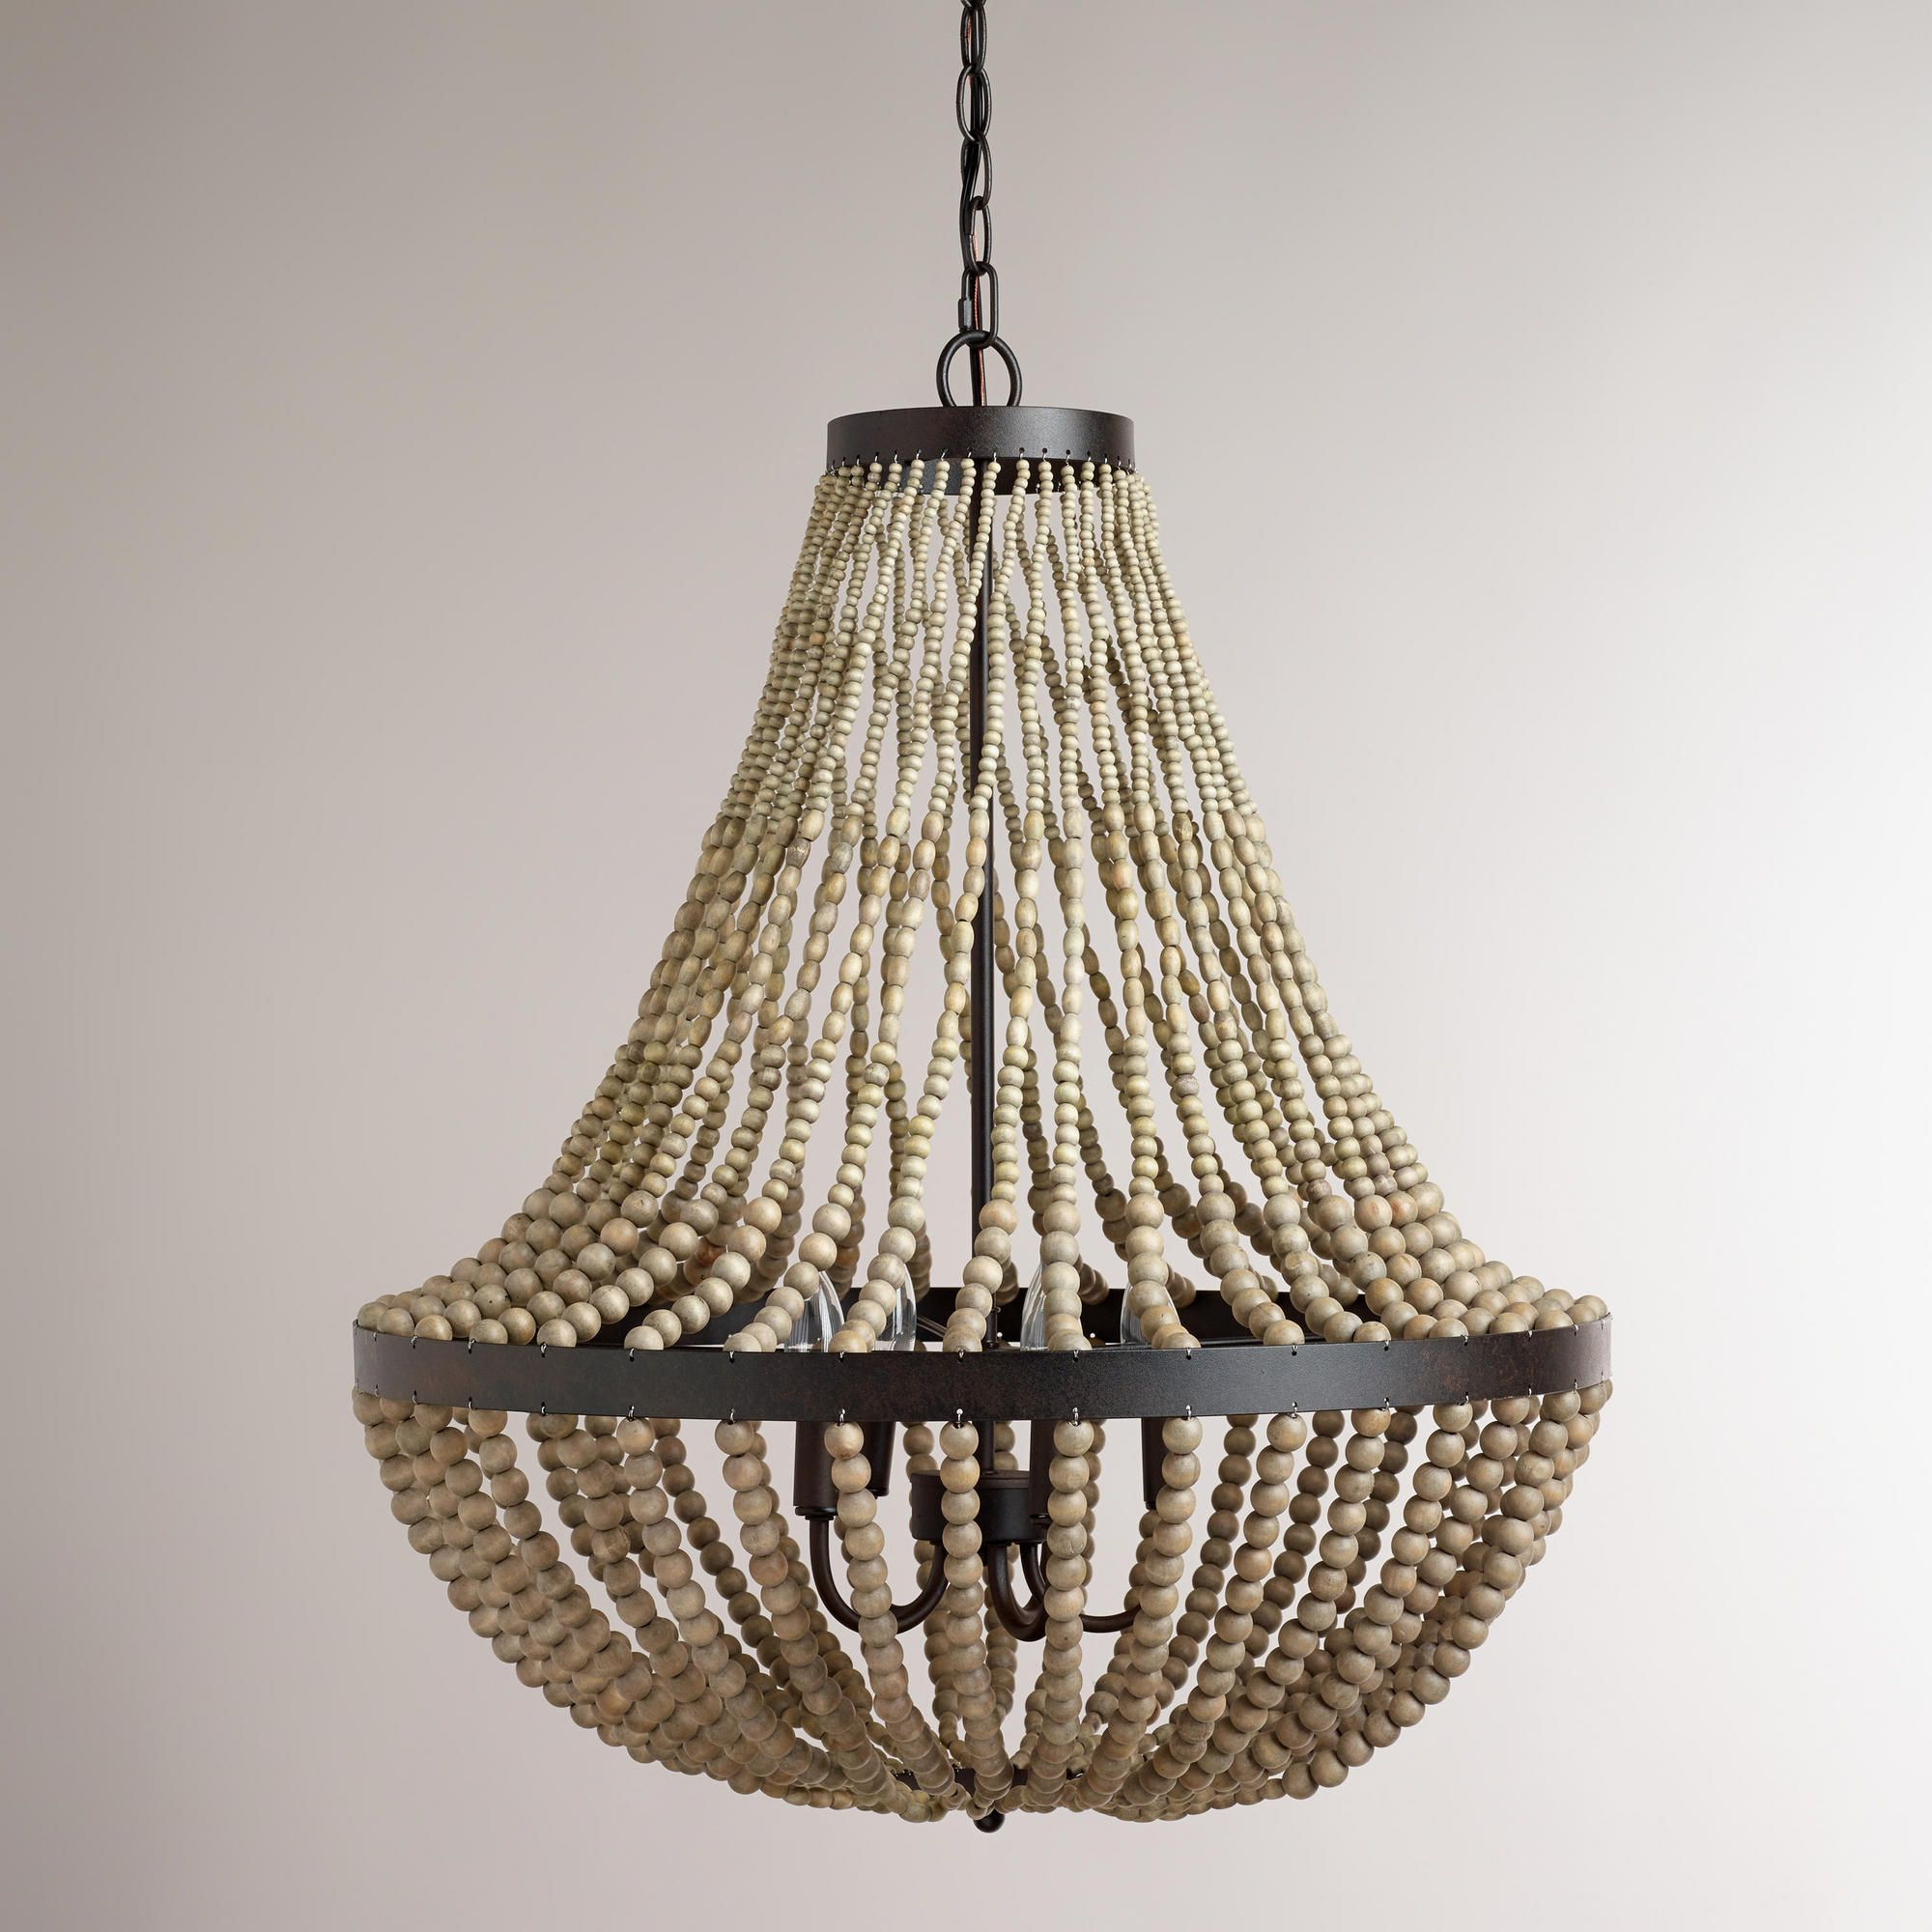 courant au chandelier sea celeste nuggets interiors empire light white glass bead products